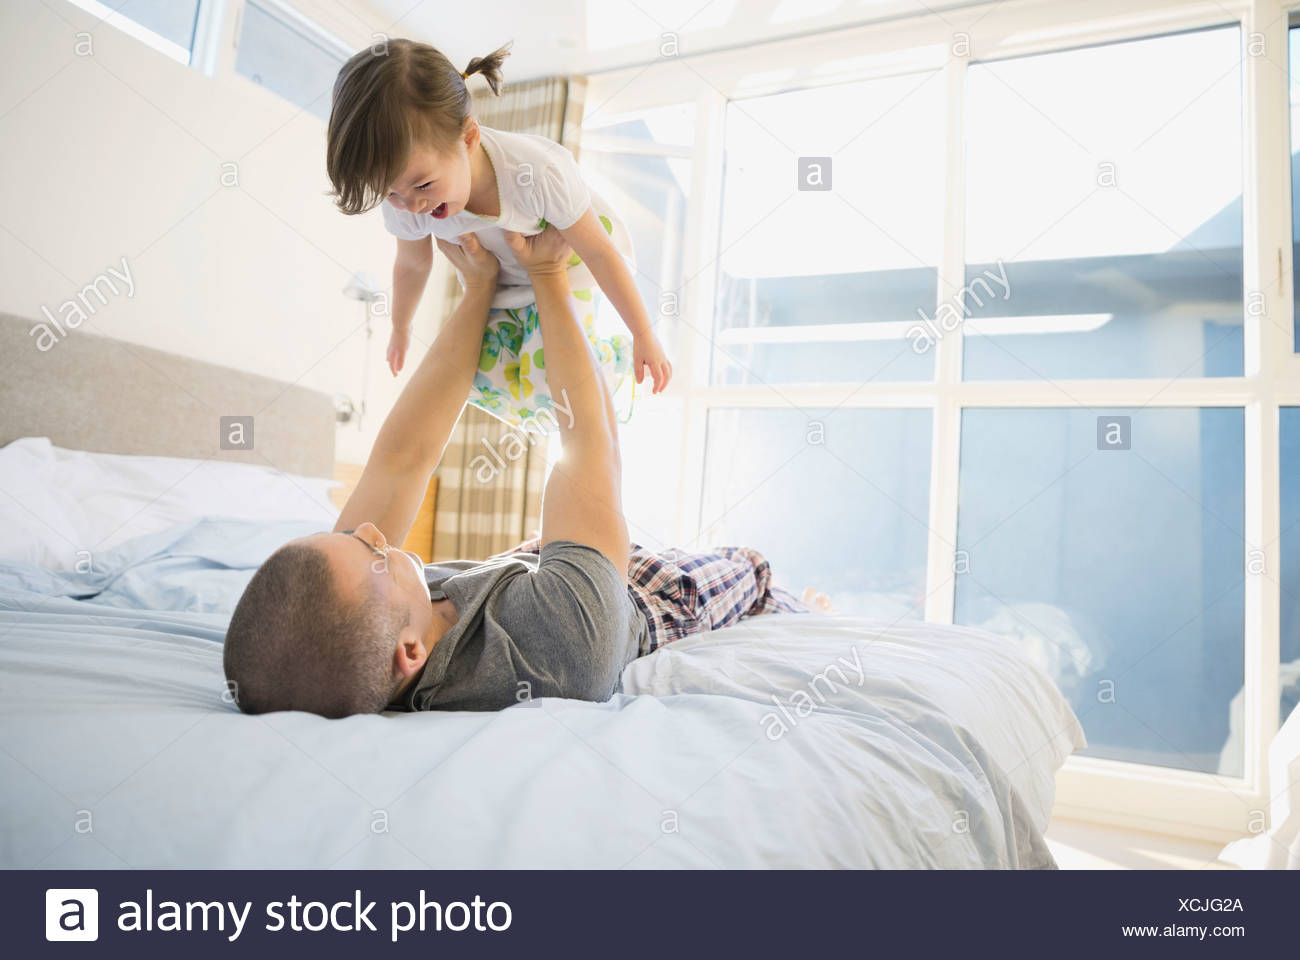 Father lifting daughter overhead on bed - Stock Image